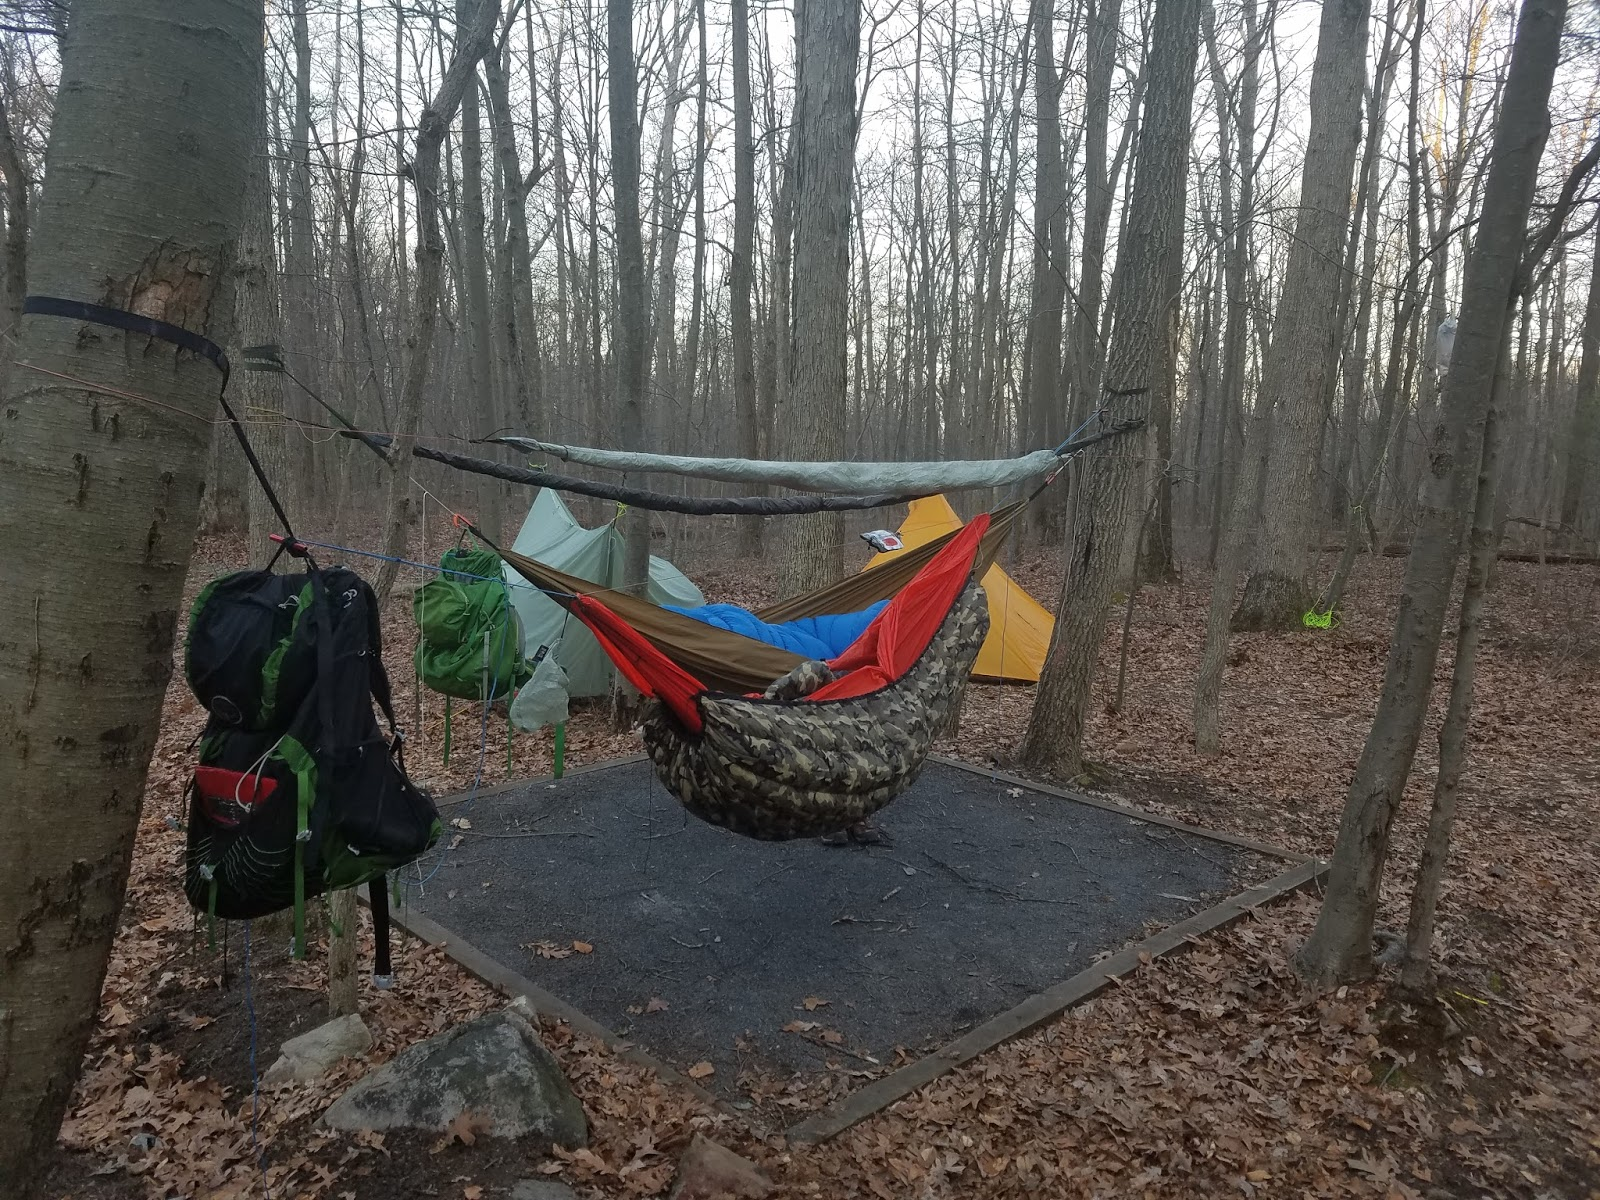 after a breakfast of honey buns and 2 cups of coffee i was ready to move on down the trail sage and i were brave enough to not deploy our tarps